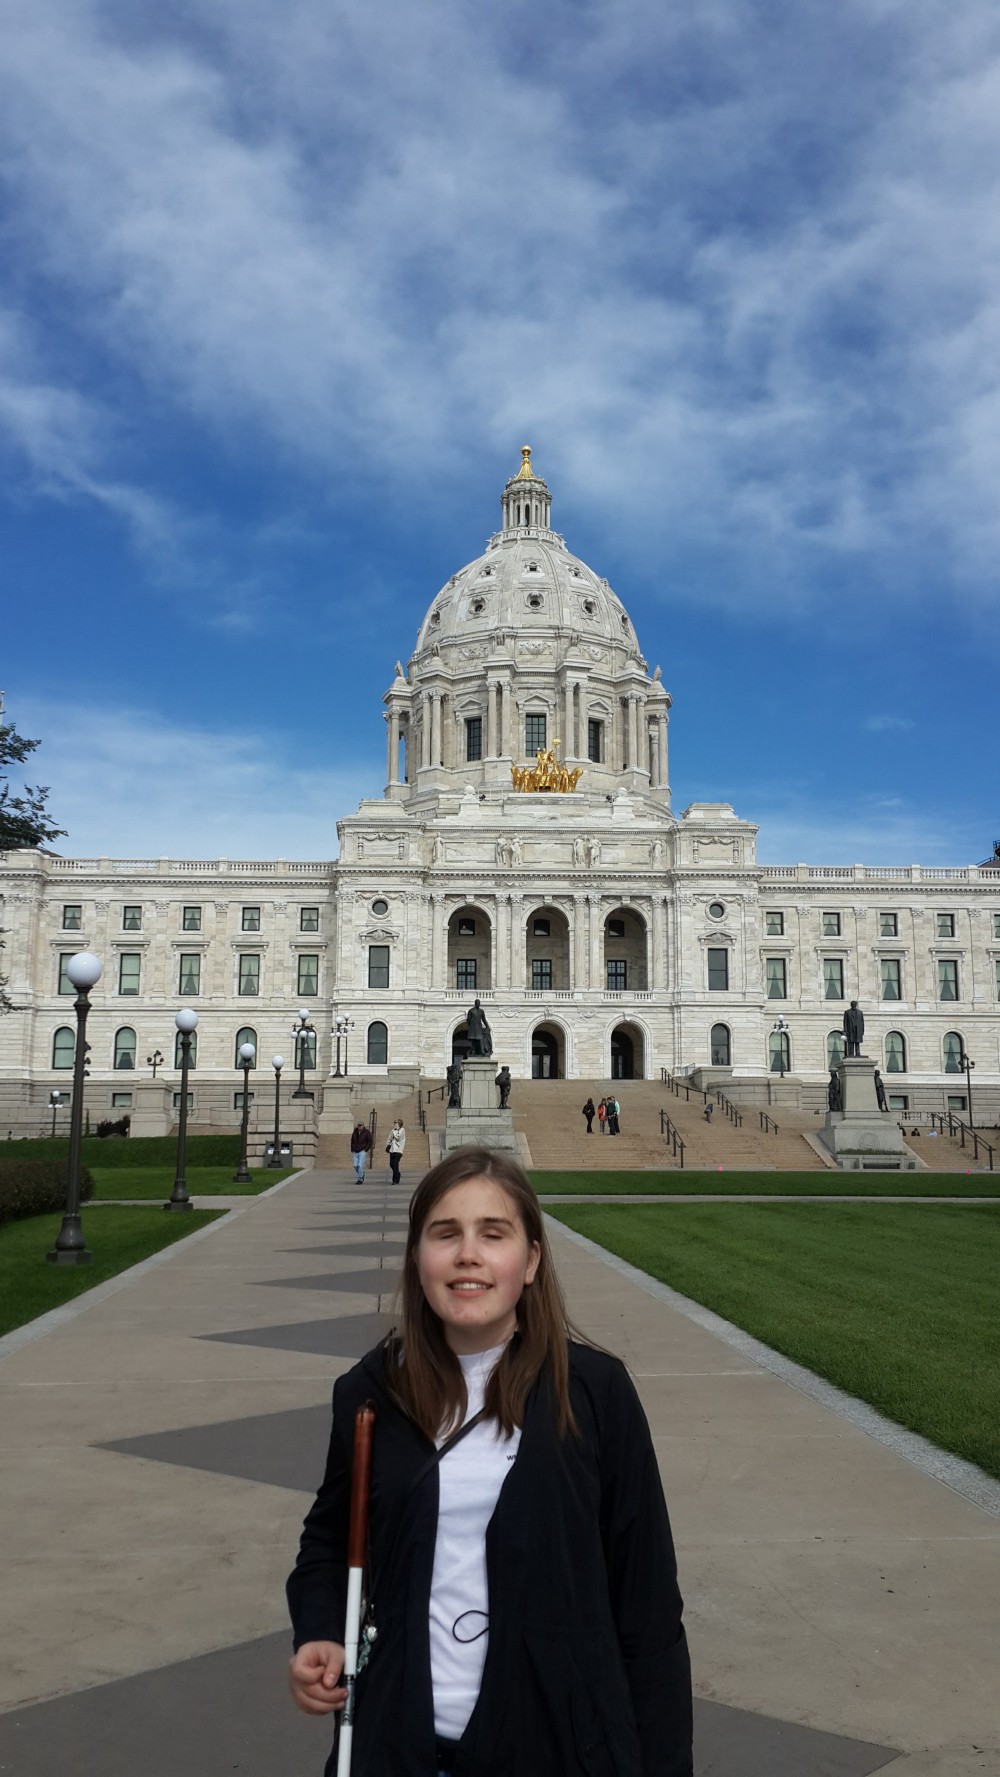 Anna standing infront of what looks like a historical government structure